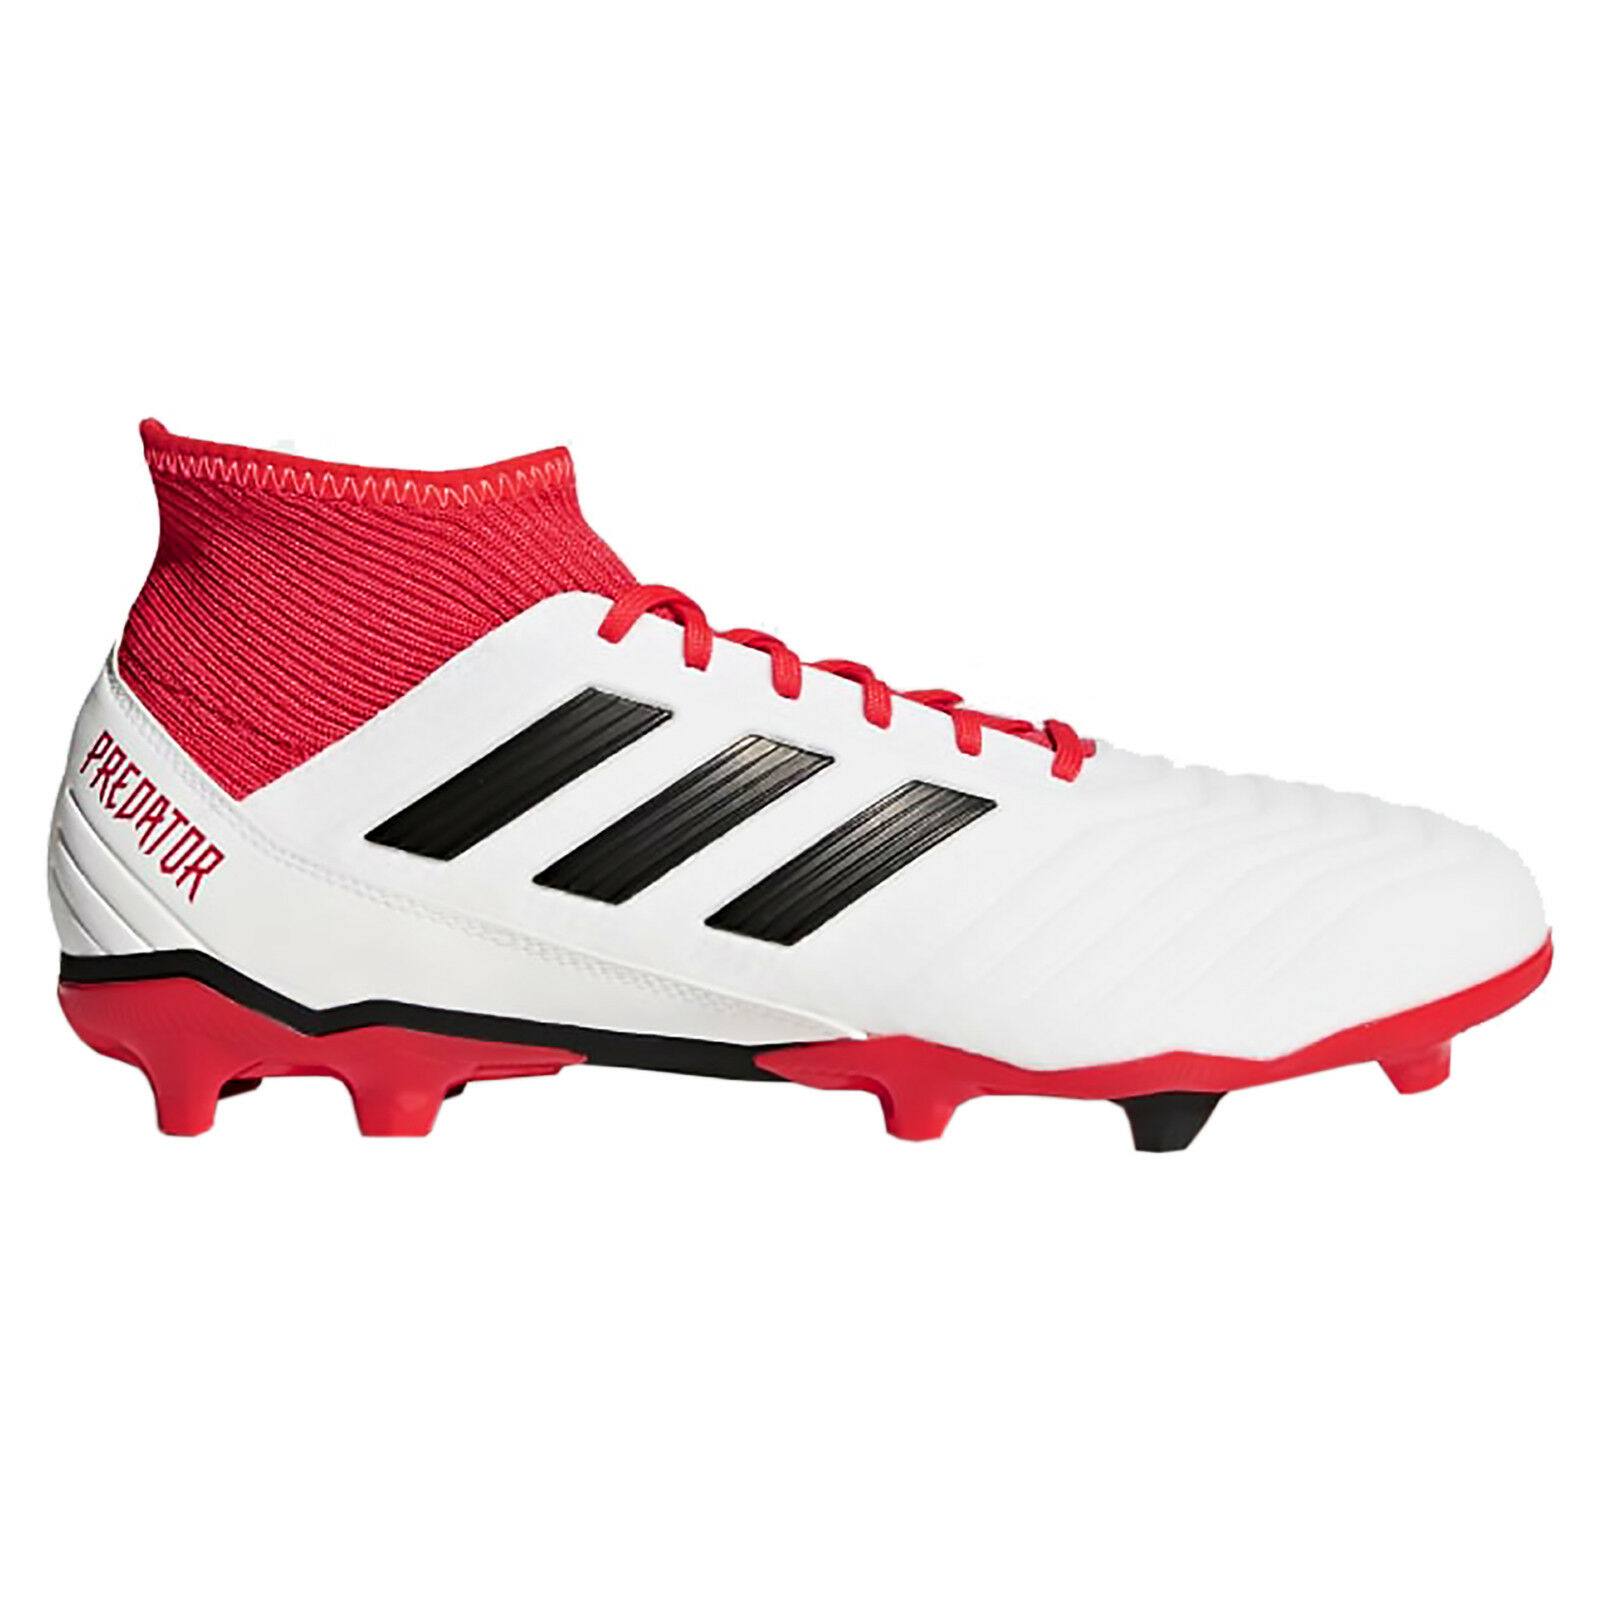 717916c09 Adidas Predator 18.3 FG Men s Soccer Cleats CM7667 (NEW) Lists    nqbkfh4742-Men